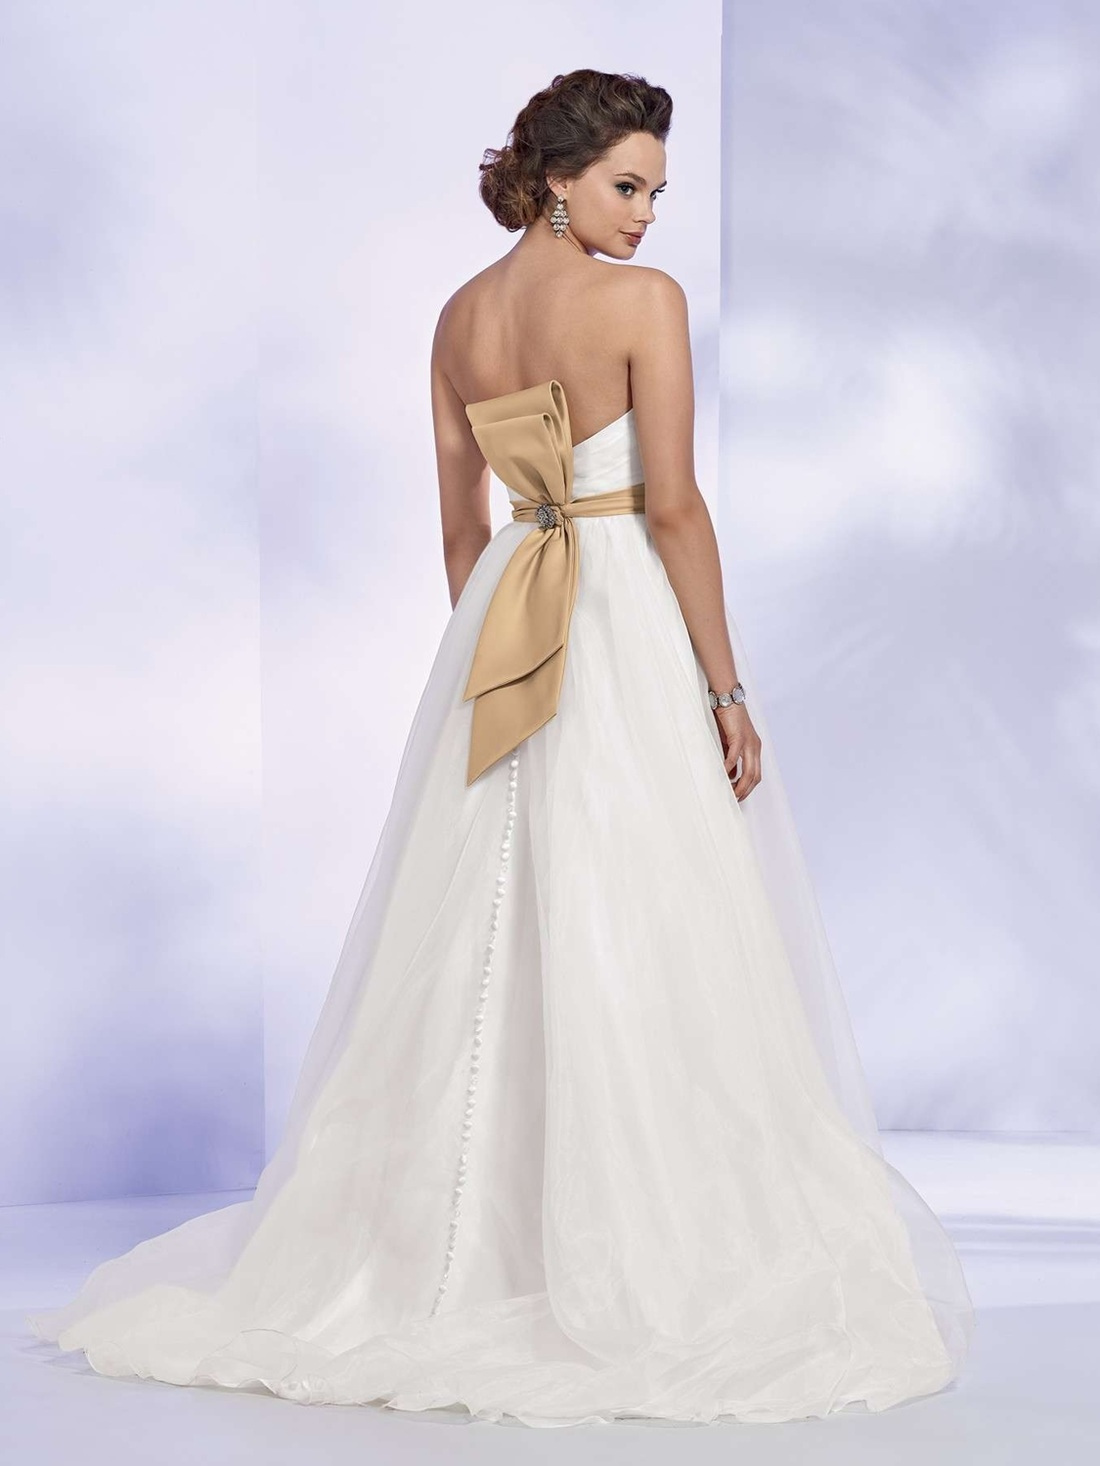 Get a Designer Wedding Dress Look for Less - SaveOnTheDate